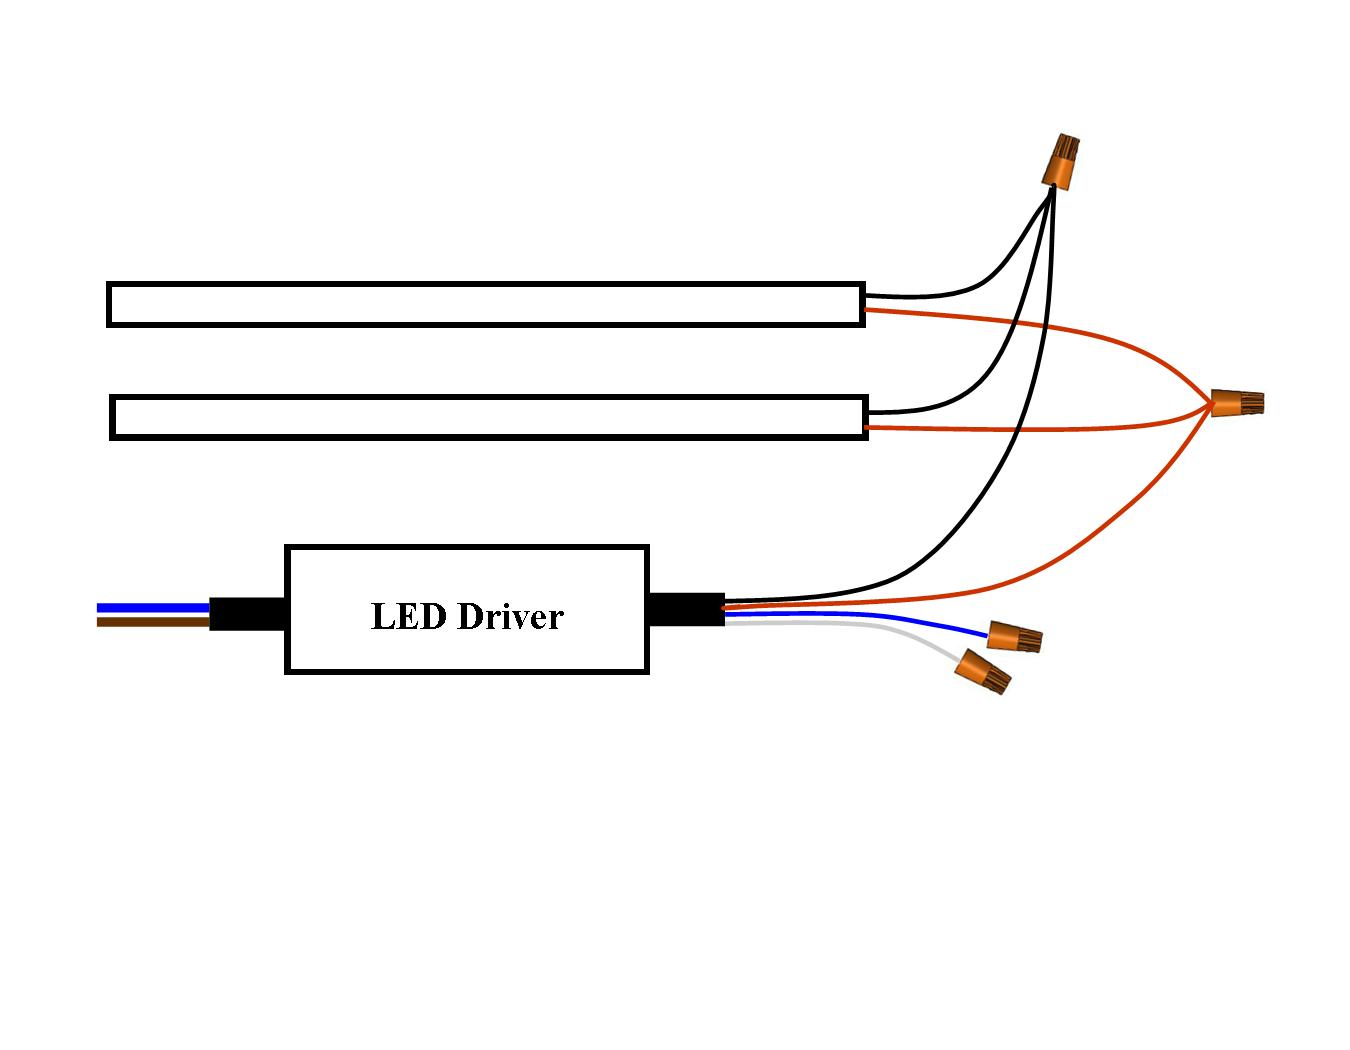 hight resolution of led troffer wiring diagram wiring diagram third levelwire diagram for leds troffers schematic diagrams high bay